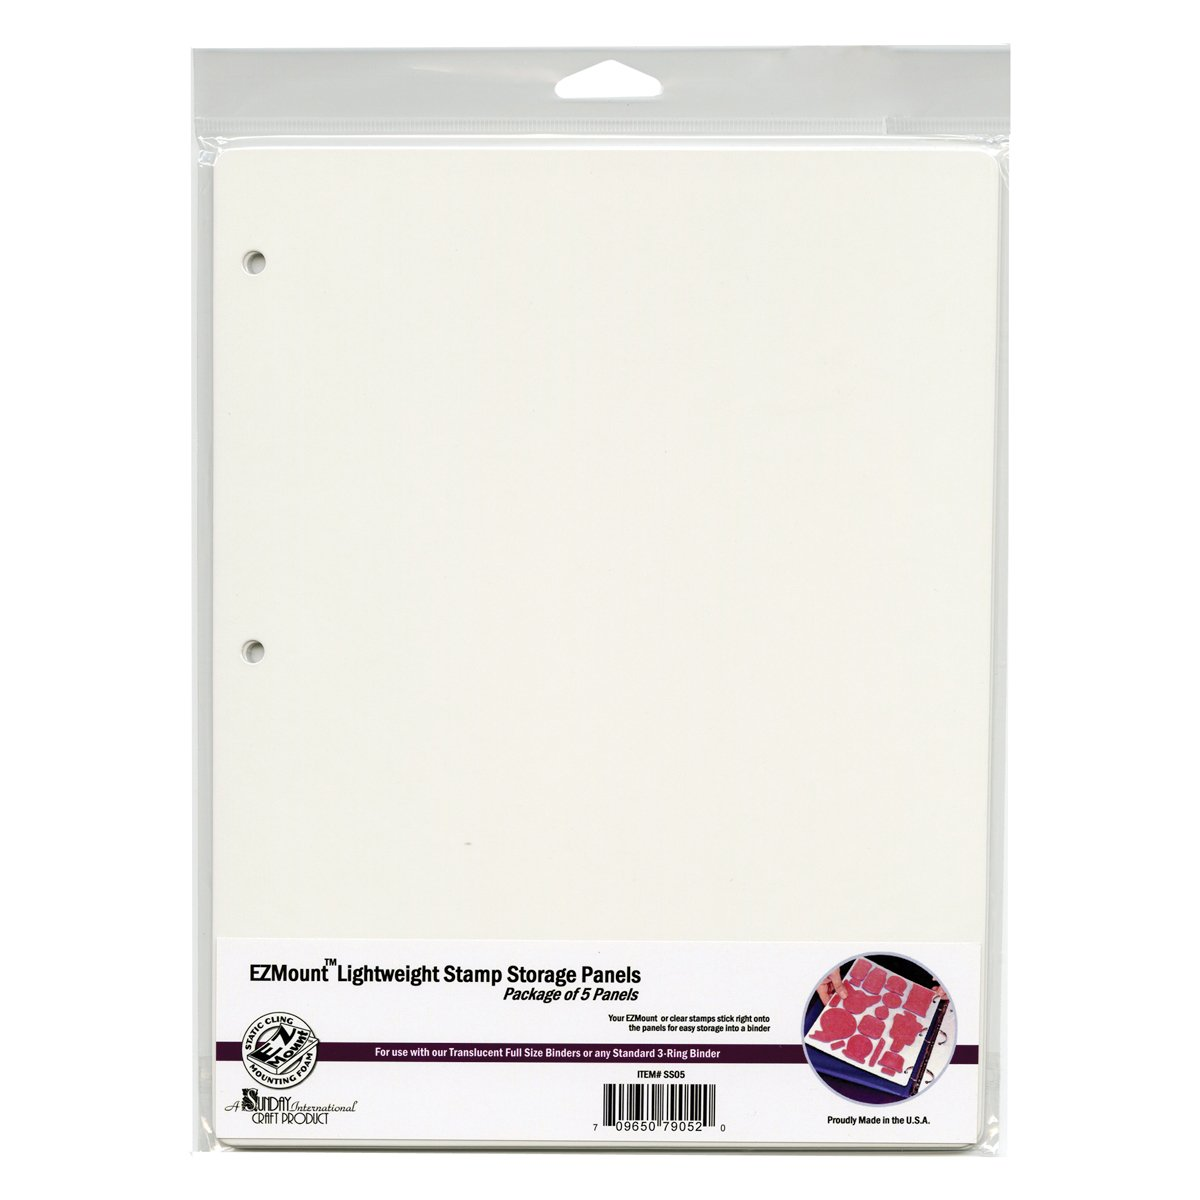 Crafter's Companion SS05 Sunday Int Stamp N' Stor Storage Panels 5/Pkg-8-1/2-Inch by 11-Inch Notions - In Network